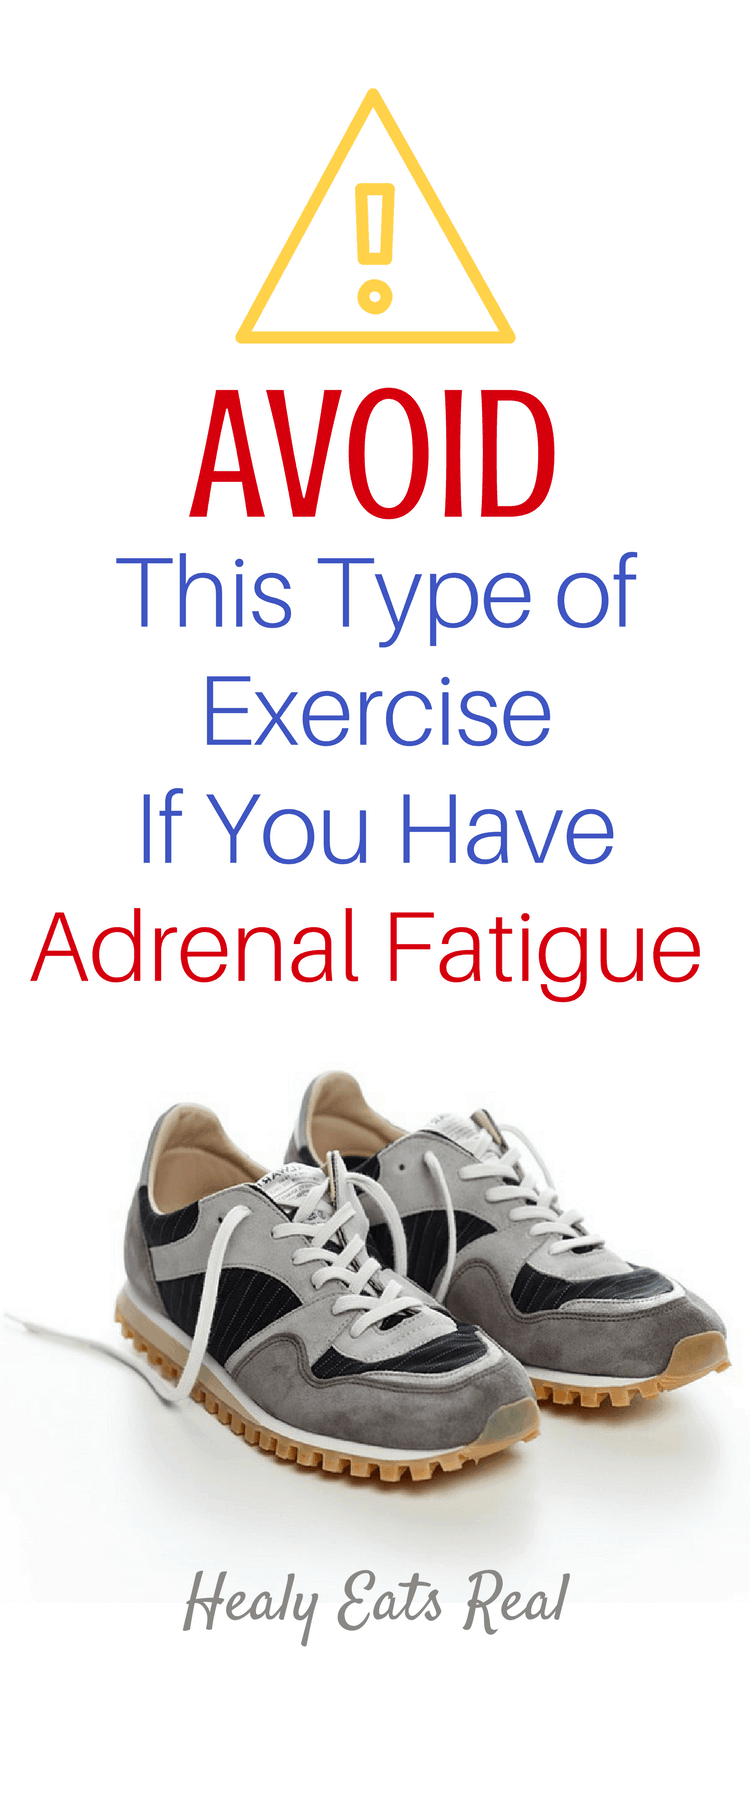 Avoid This Type Of Exercise If You Have Adrenal Fatigue